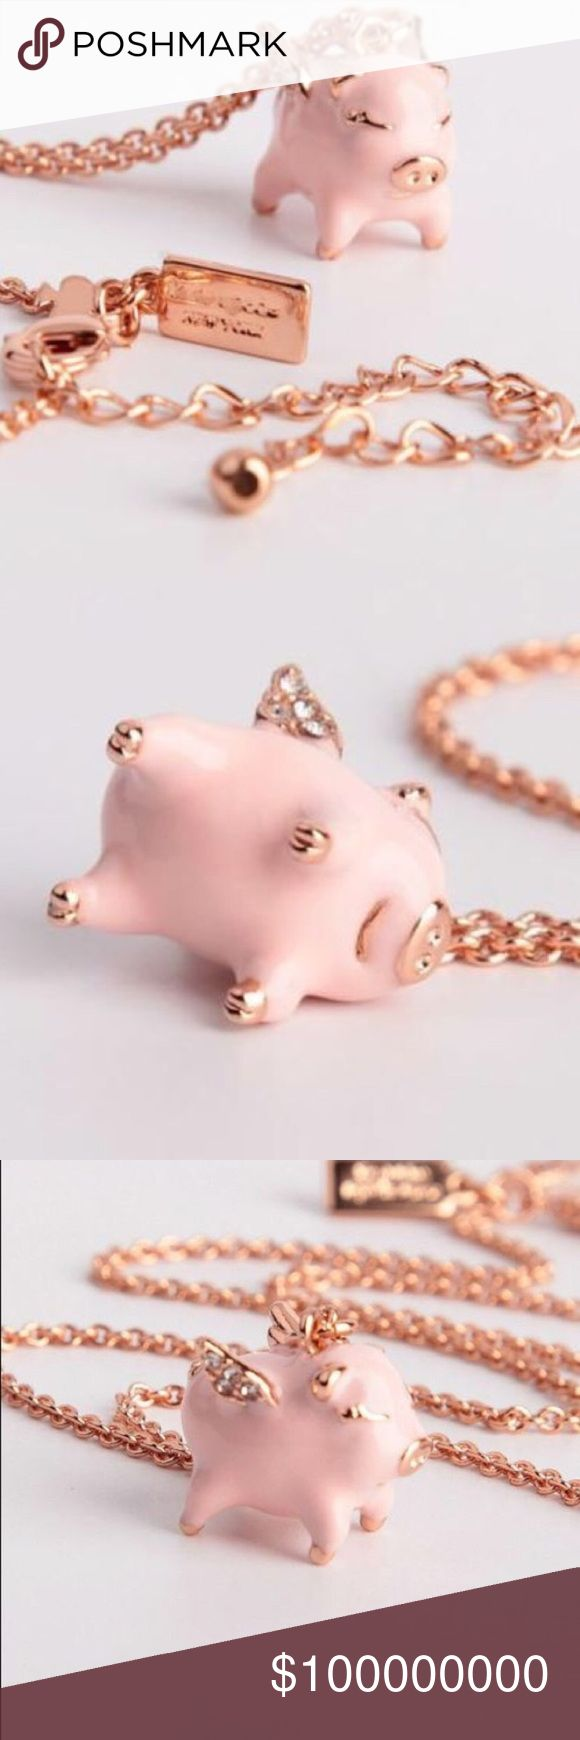 Kate Spade Imagination Mini Pig Pendant NWT, never worn. Comes in original packaging.  Retailed $84 (including tax).   No trade. Price Firm. kate spade Jewelry Necklaces